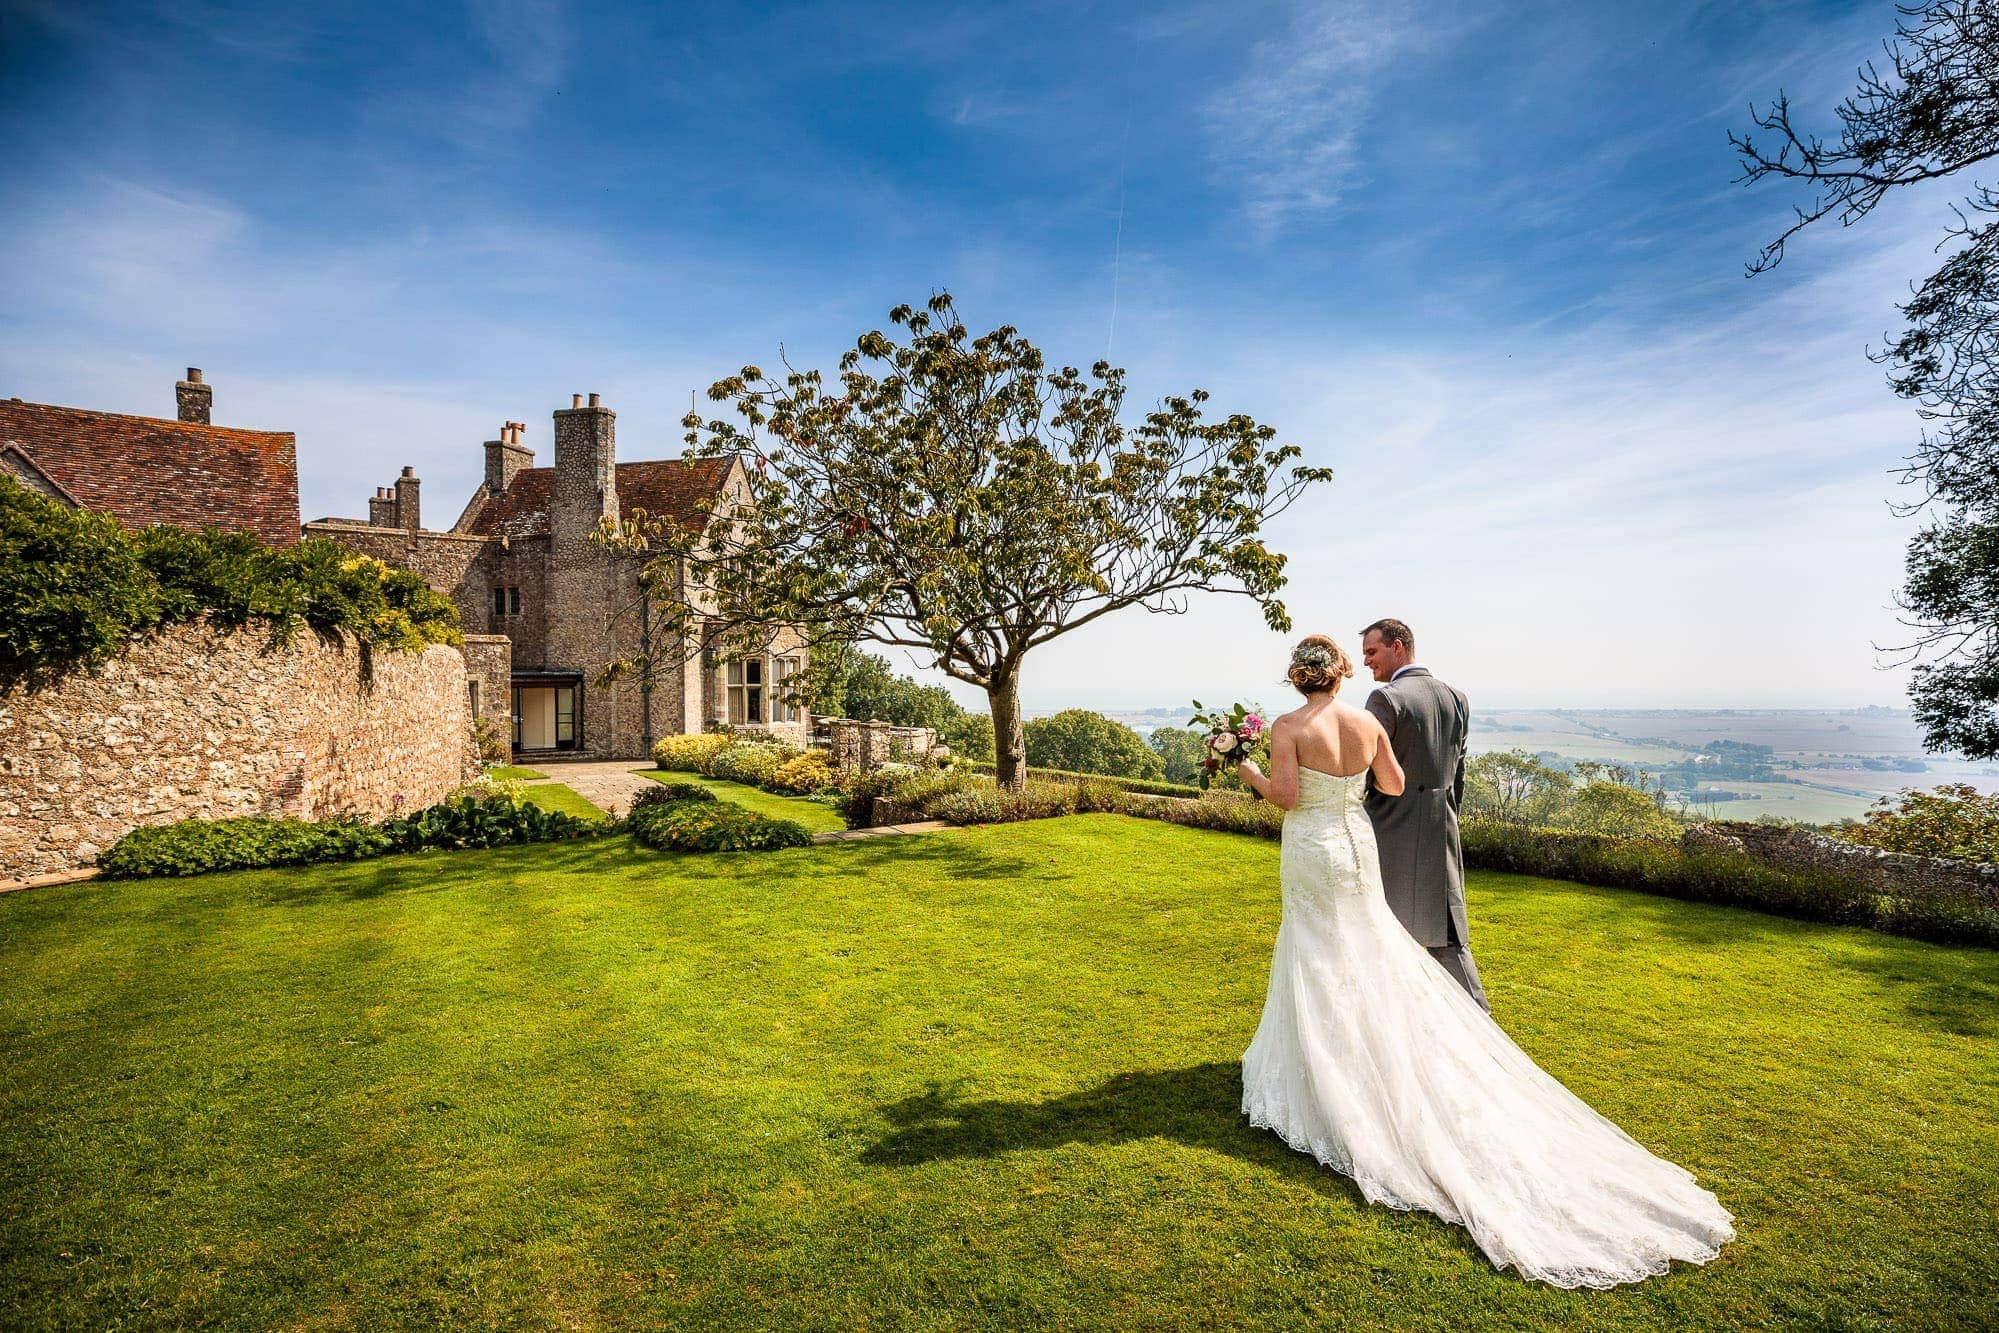 Couple walking away across grass from wedding ceremony at Lympne Castle in Kent. Blue sky, summers day.